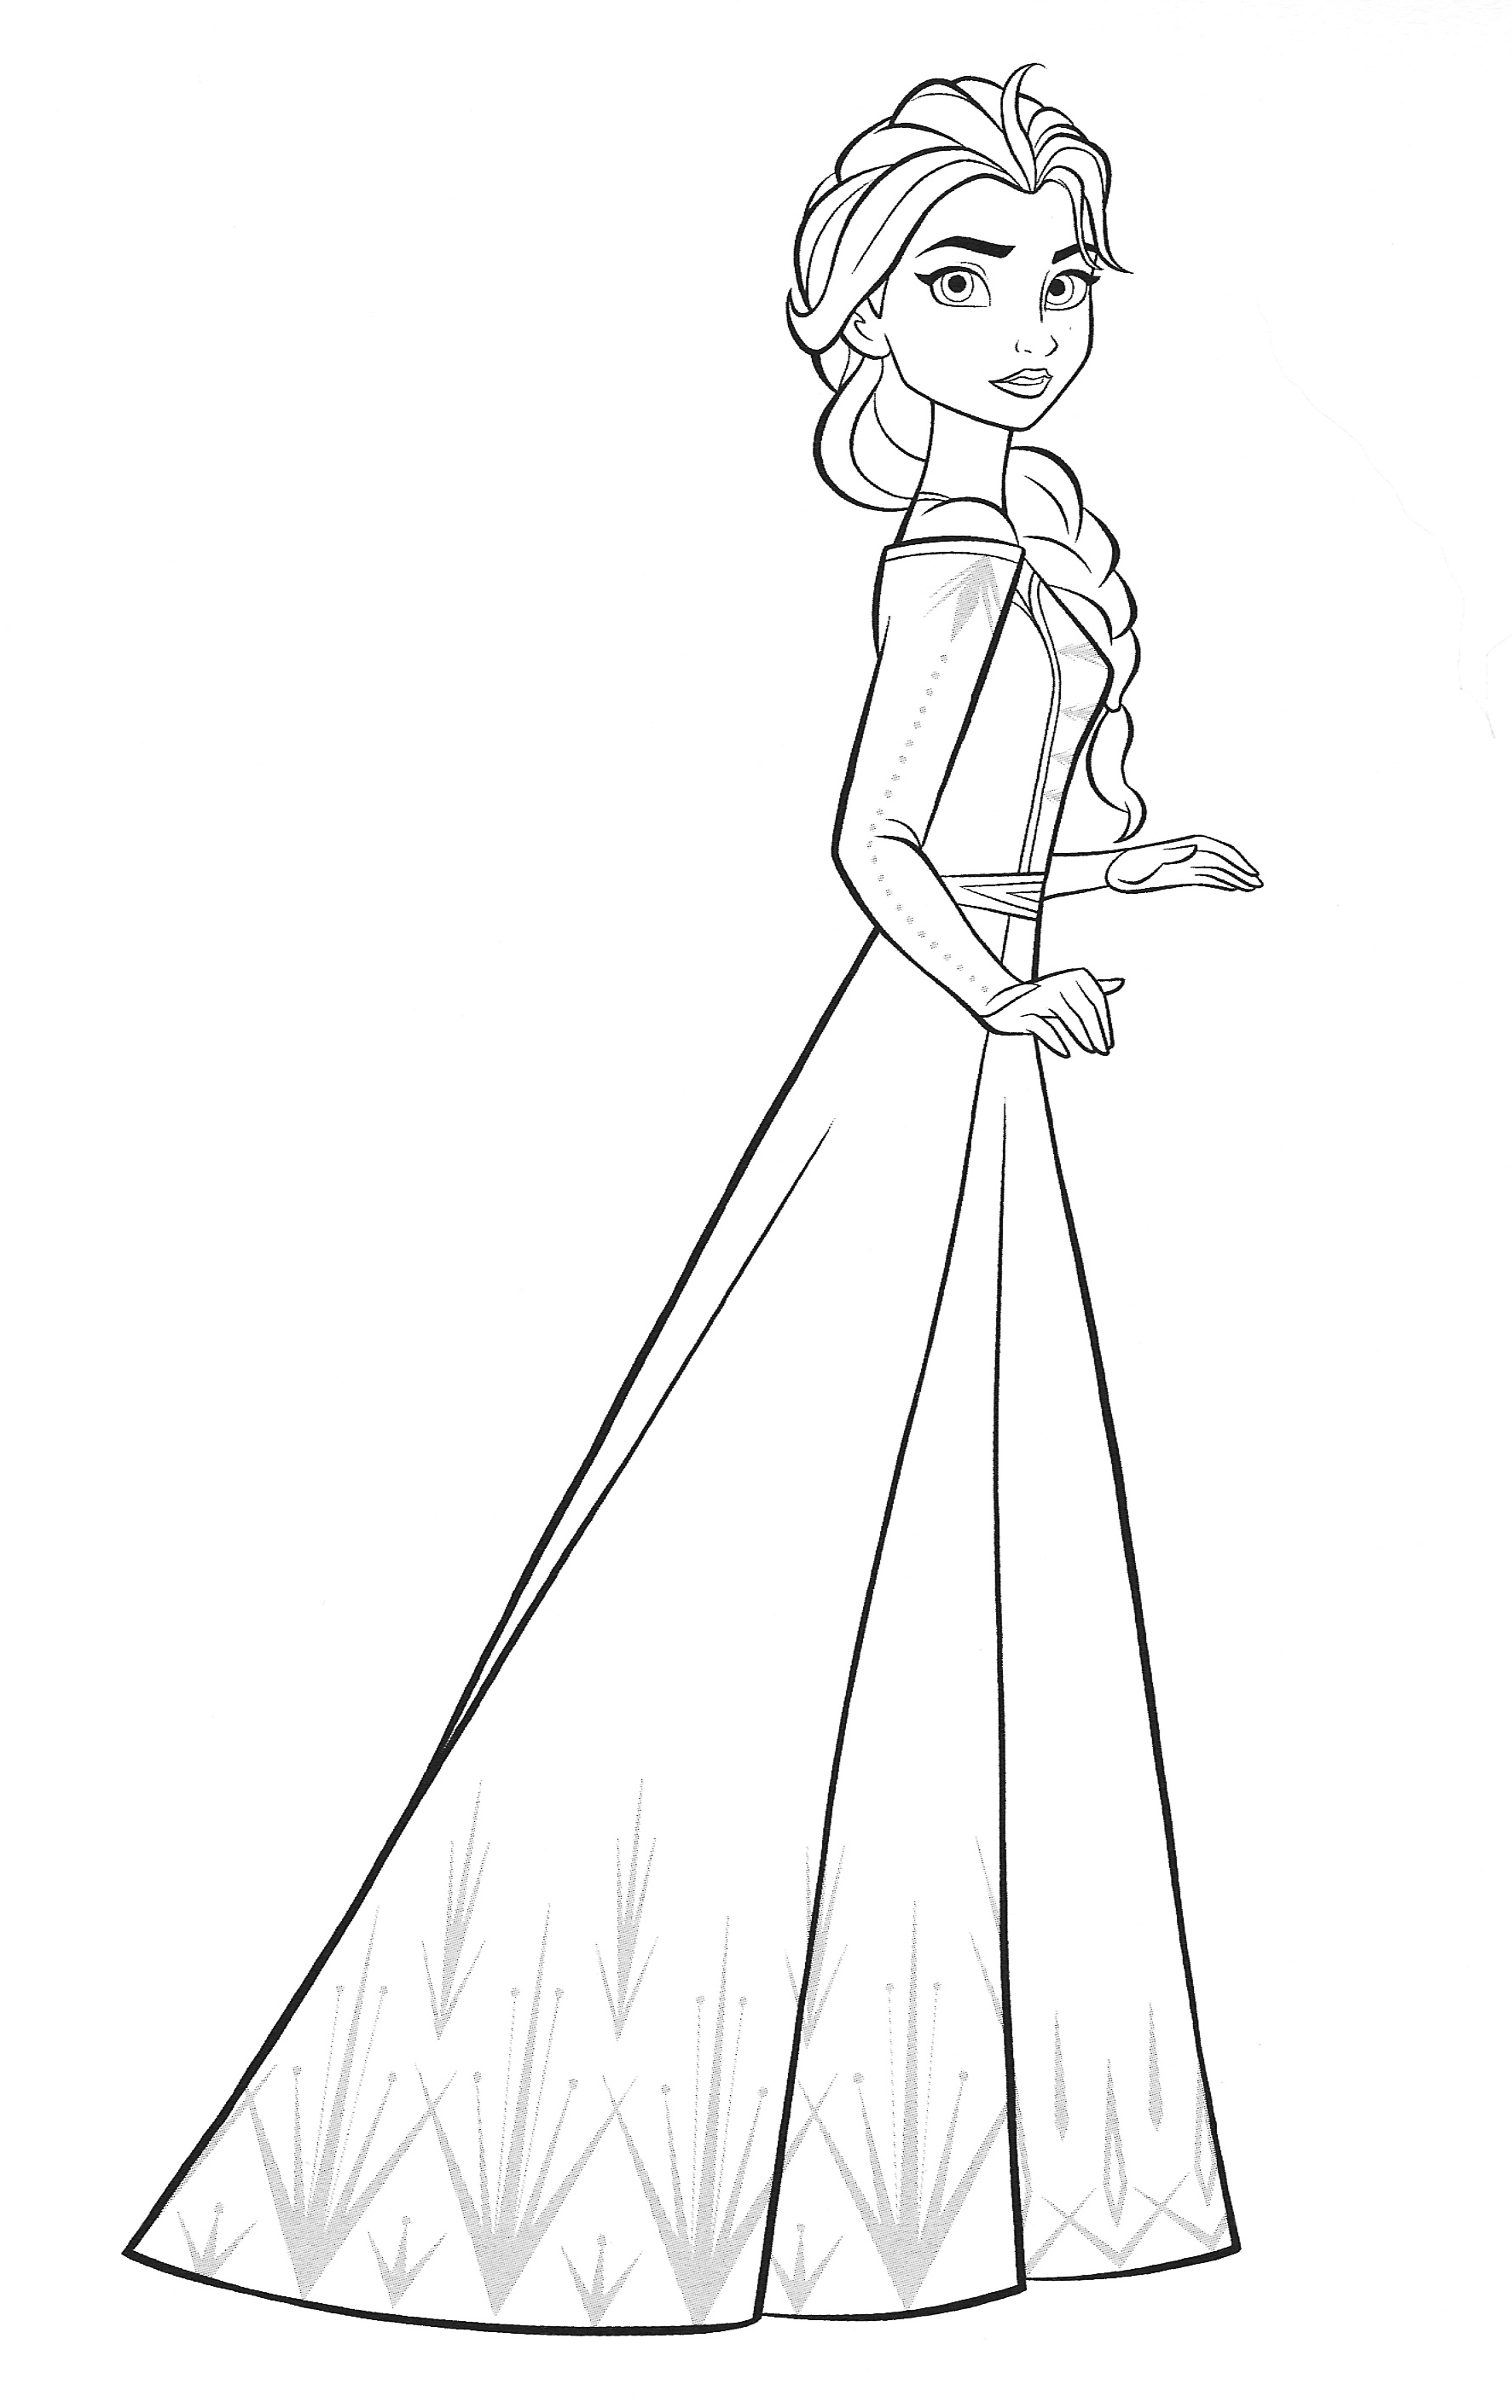 New Frozen 2 coloring pages with Elsa - YouLoveIt.com